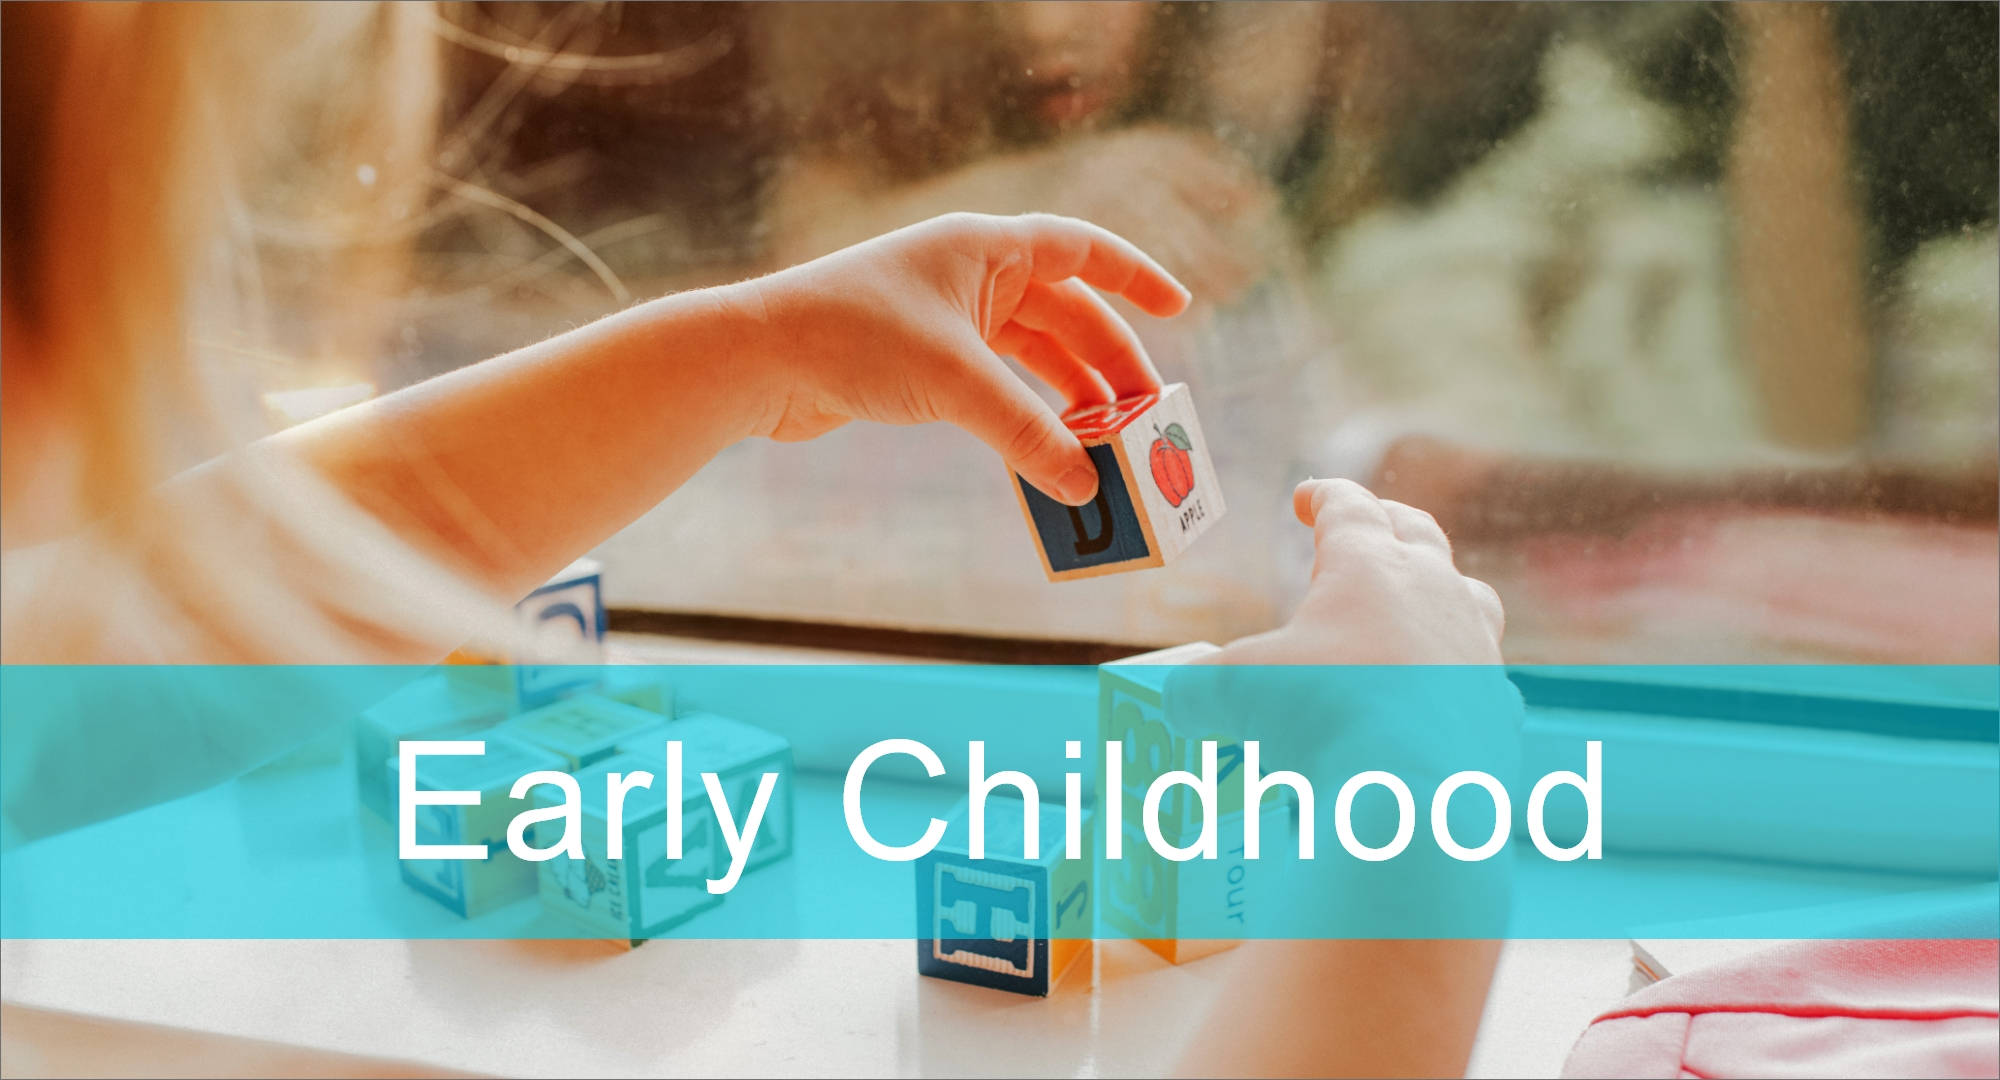 Click here to view Eaarly Childhood Education articles